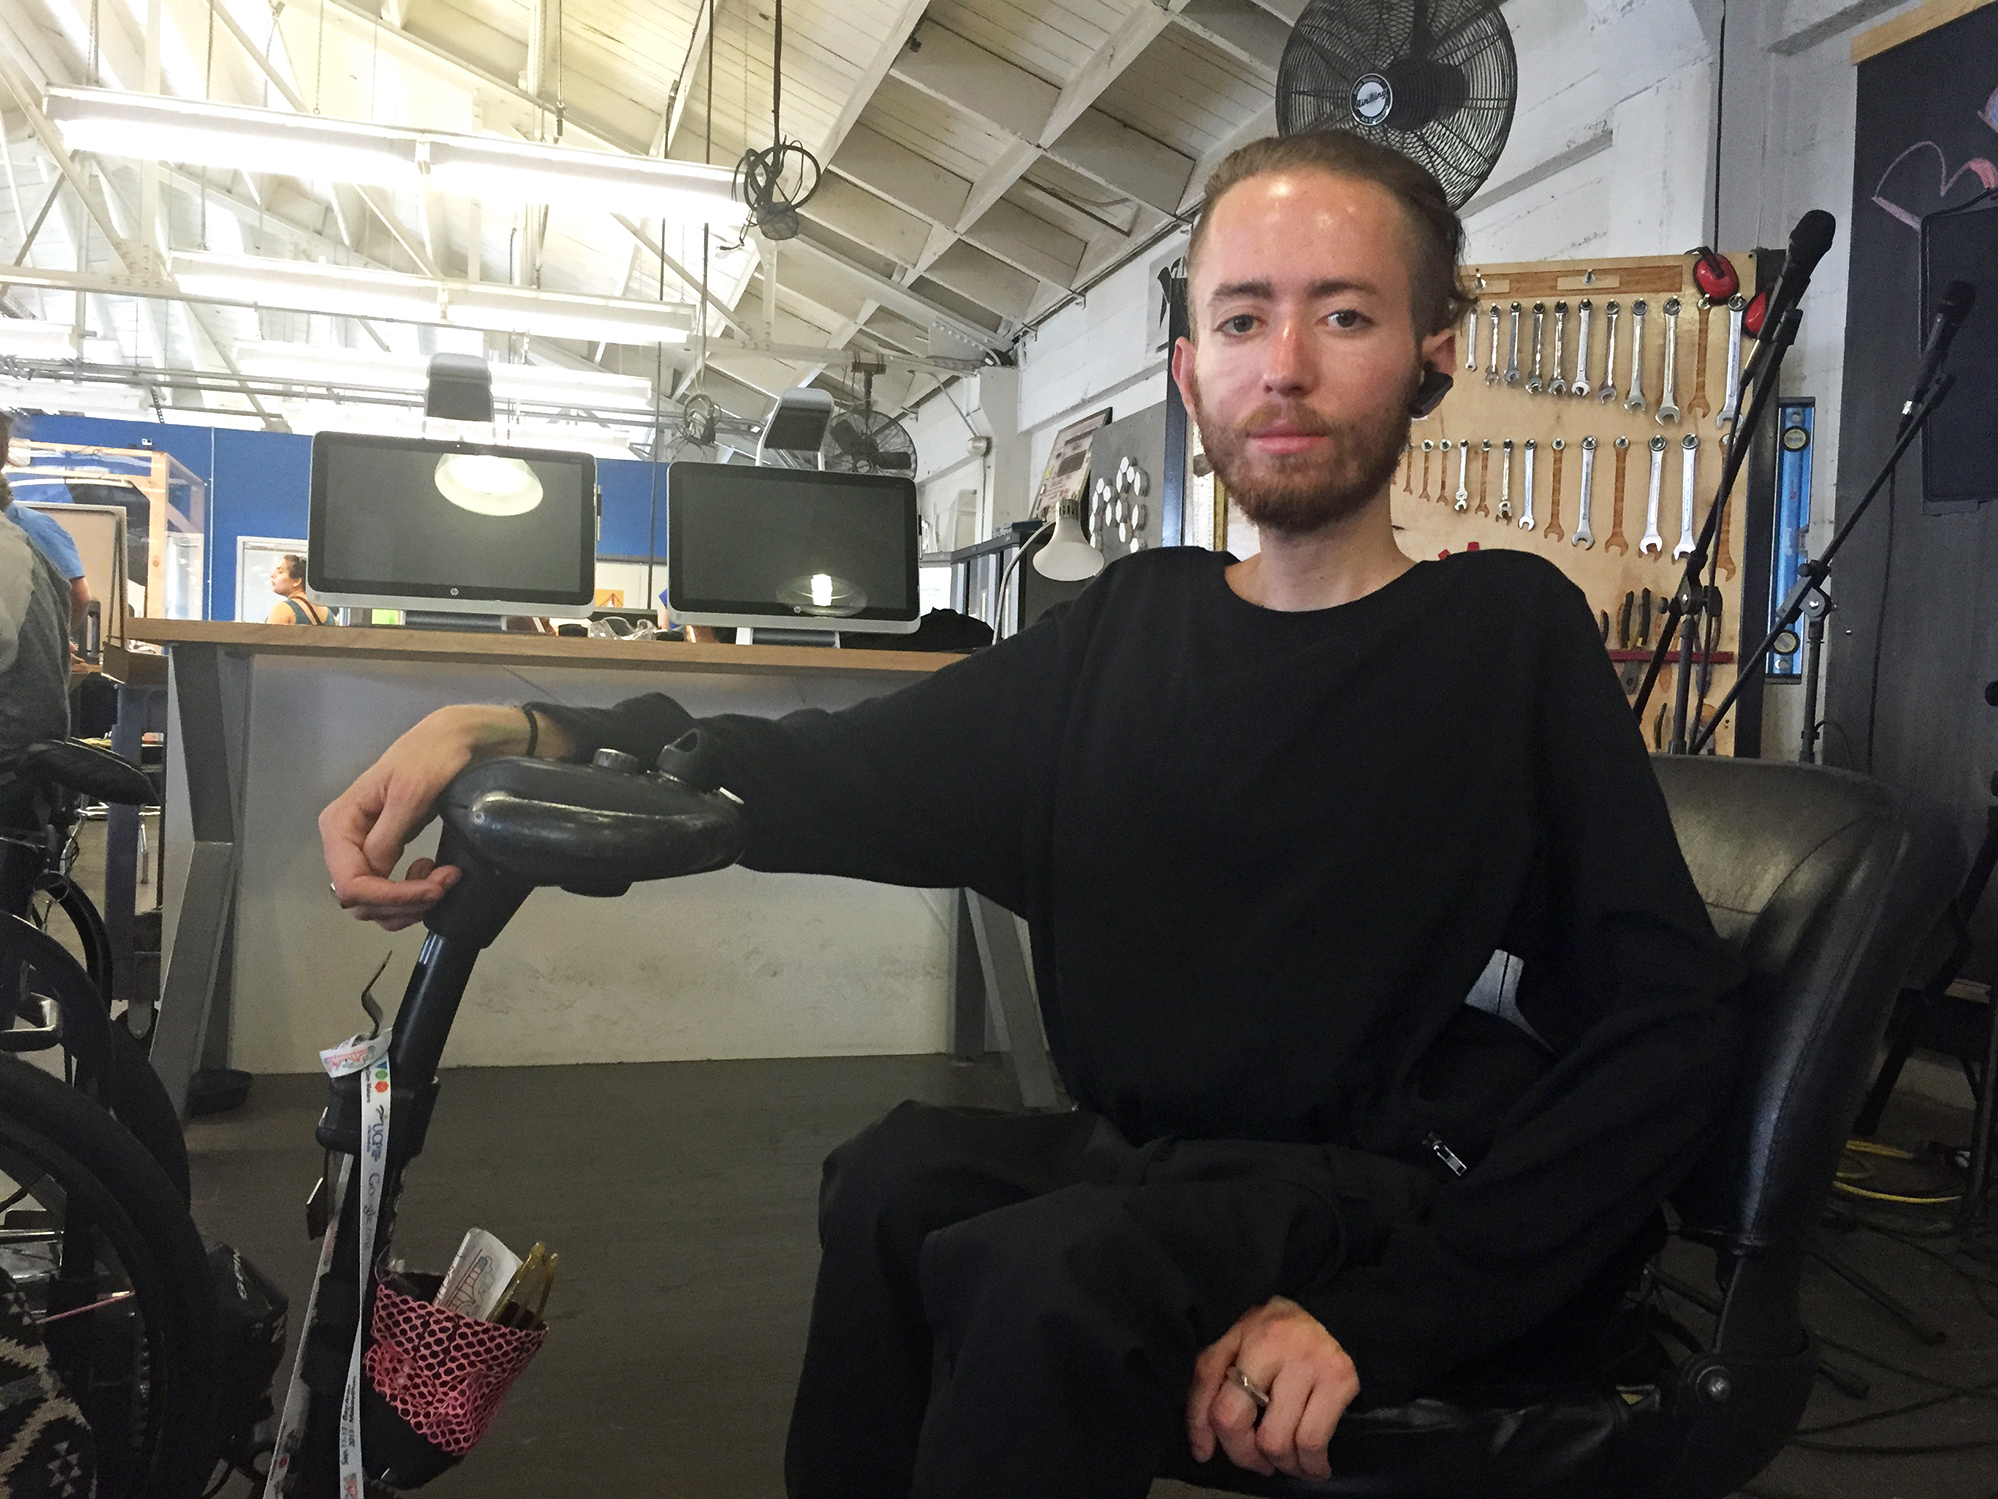 Affordable Virtual Reality Opens New Worlds For People With Disabilities